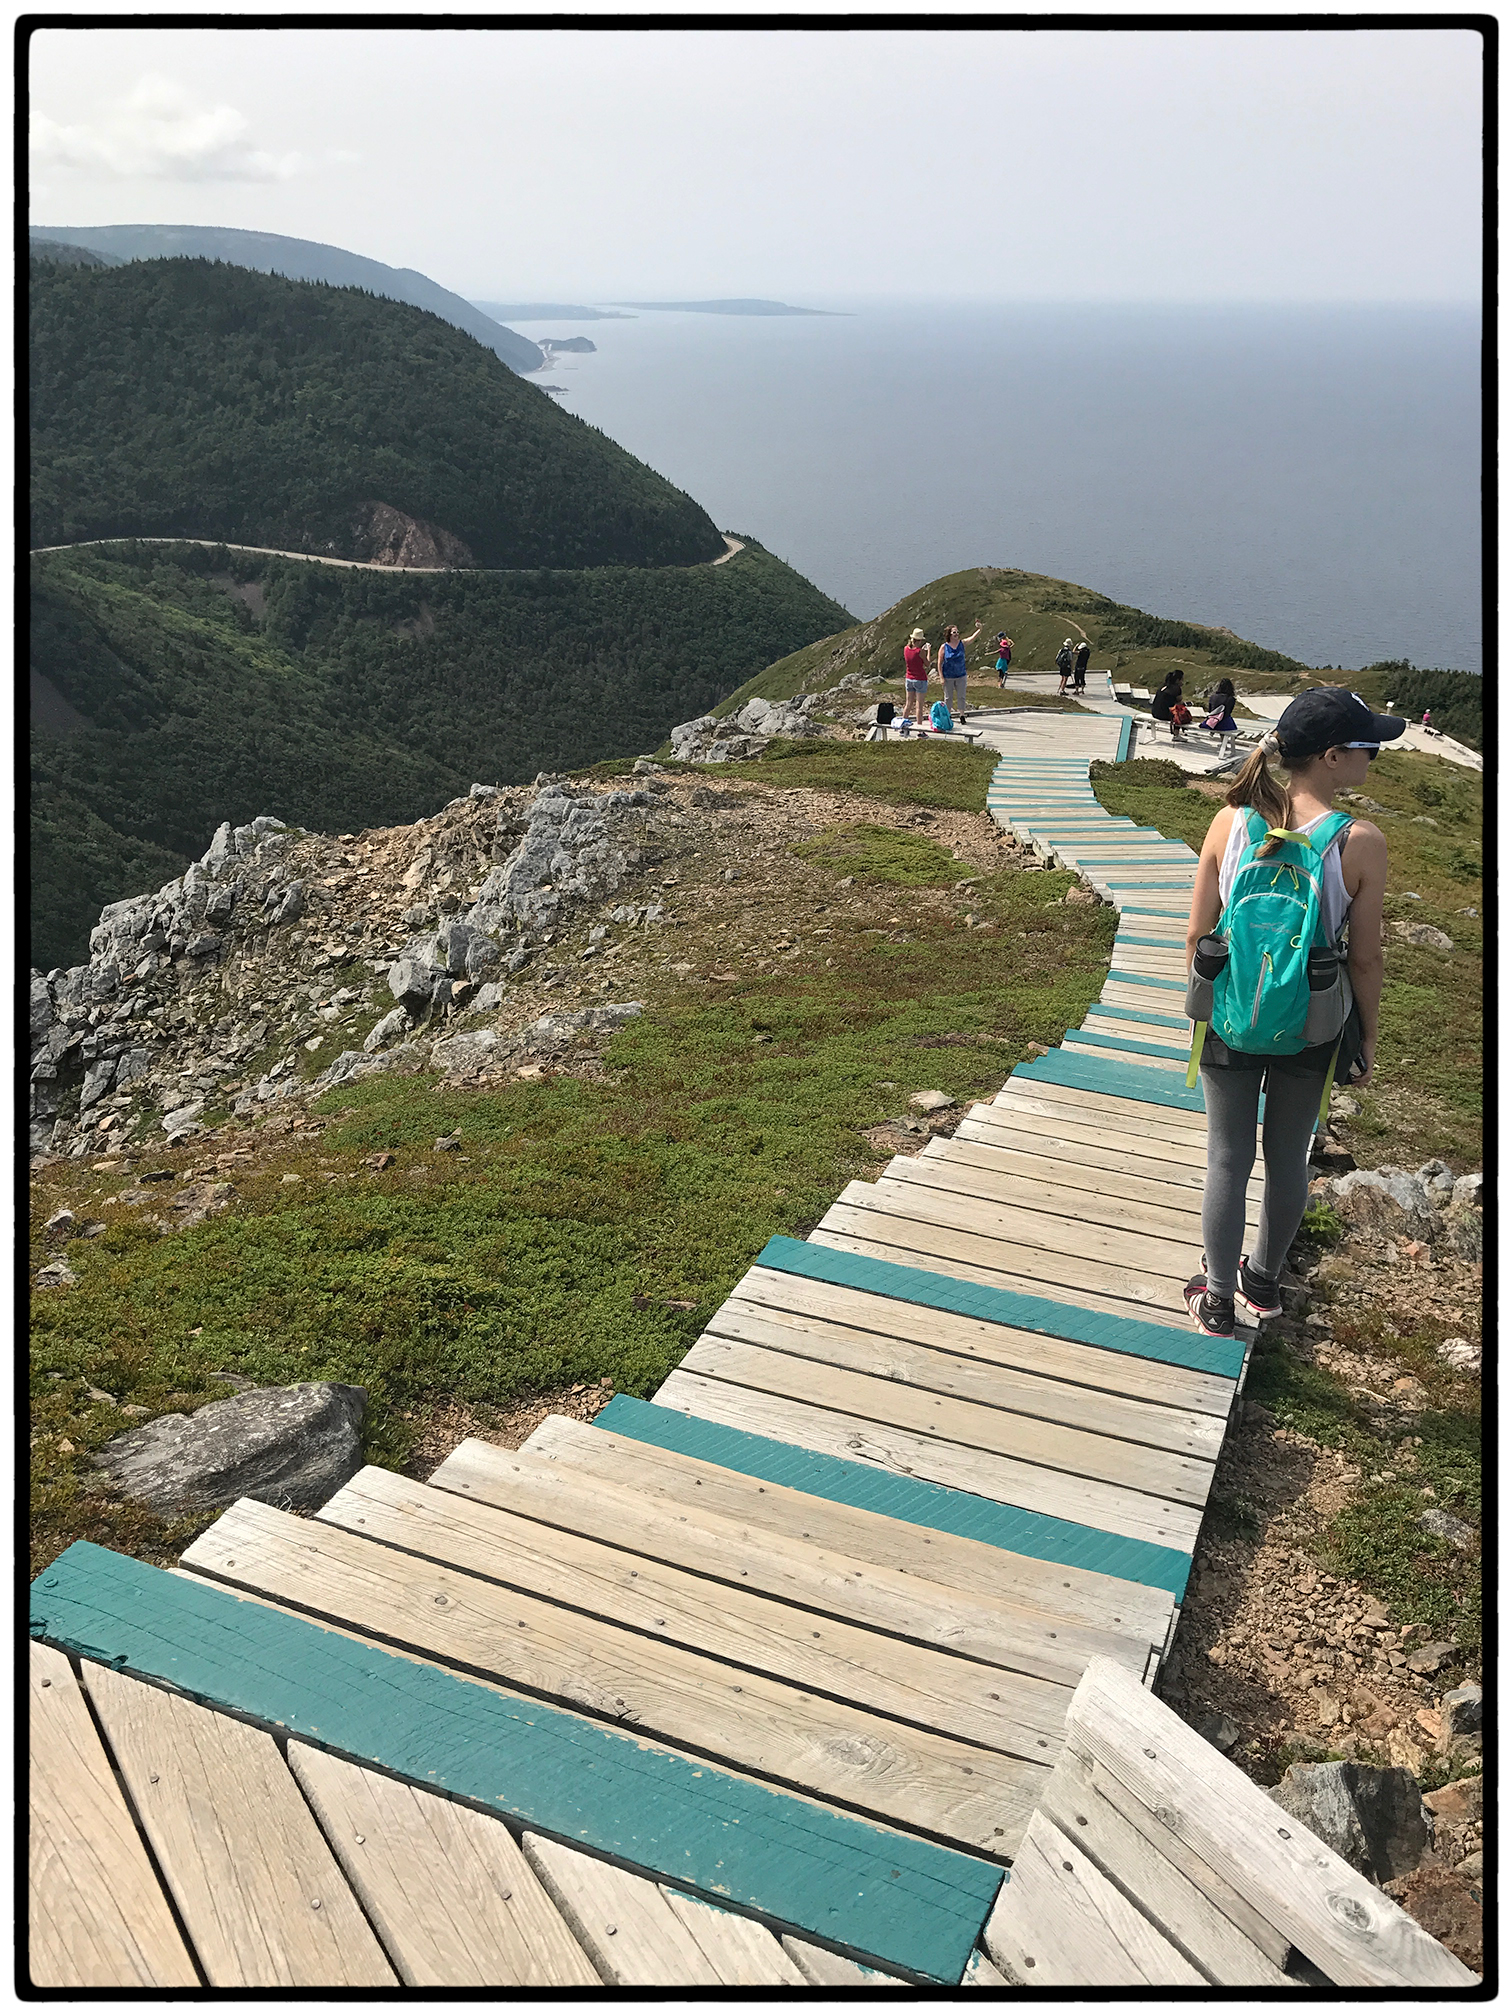 Final destination at Cape Breton Island hike